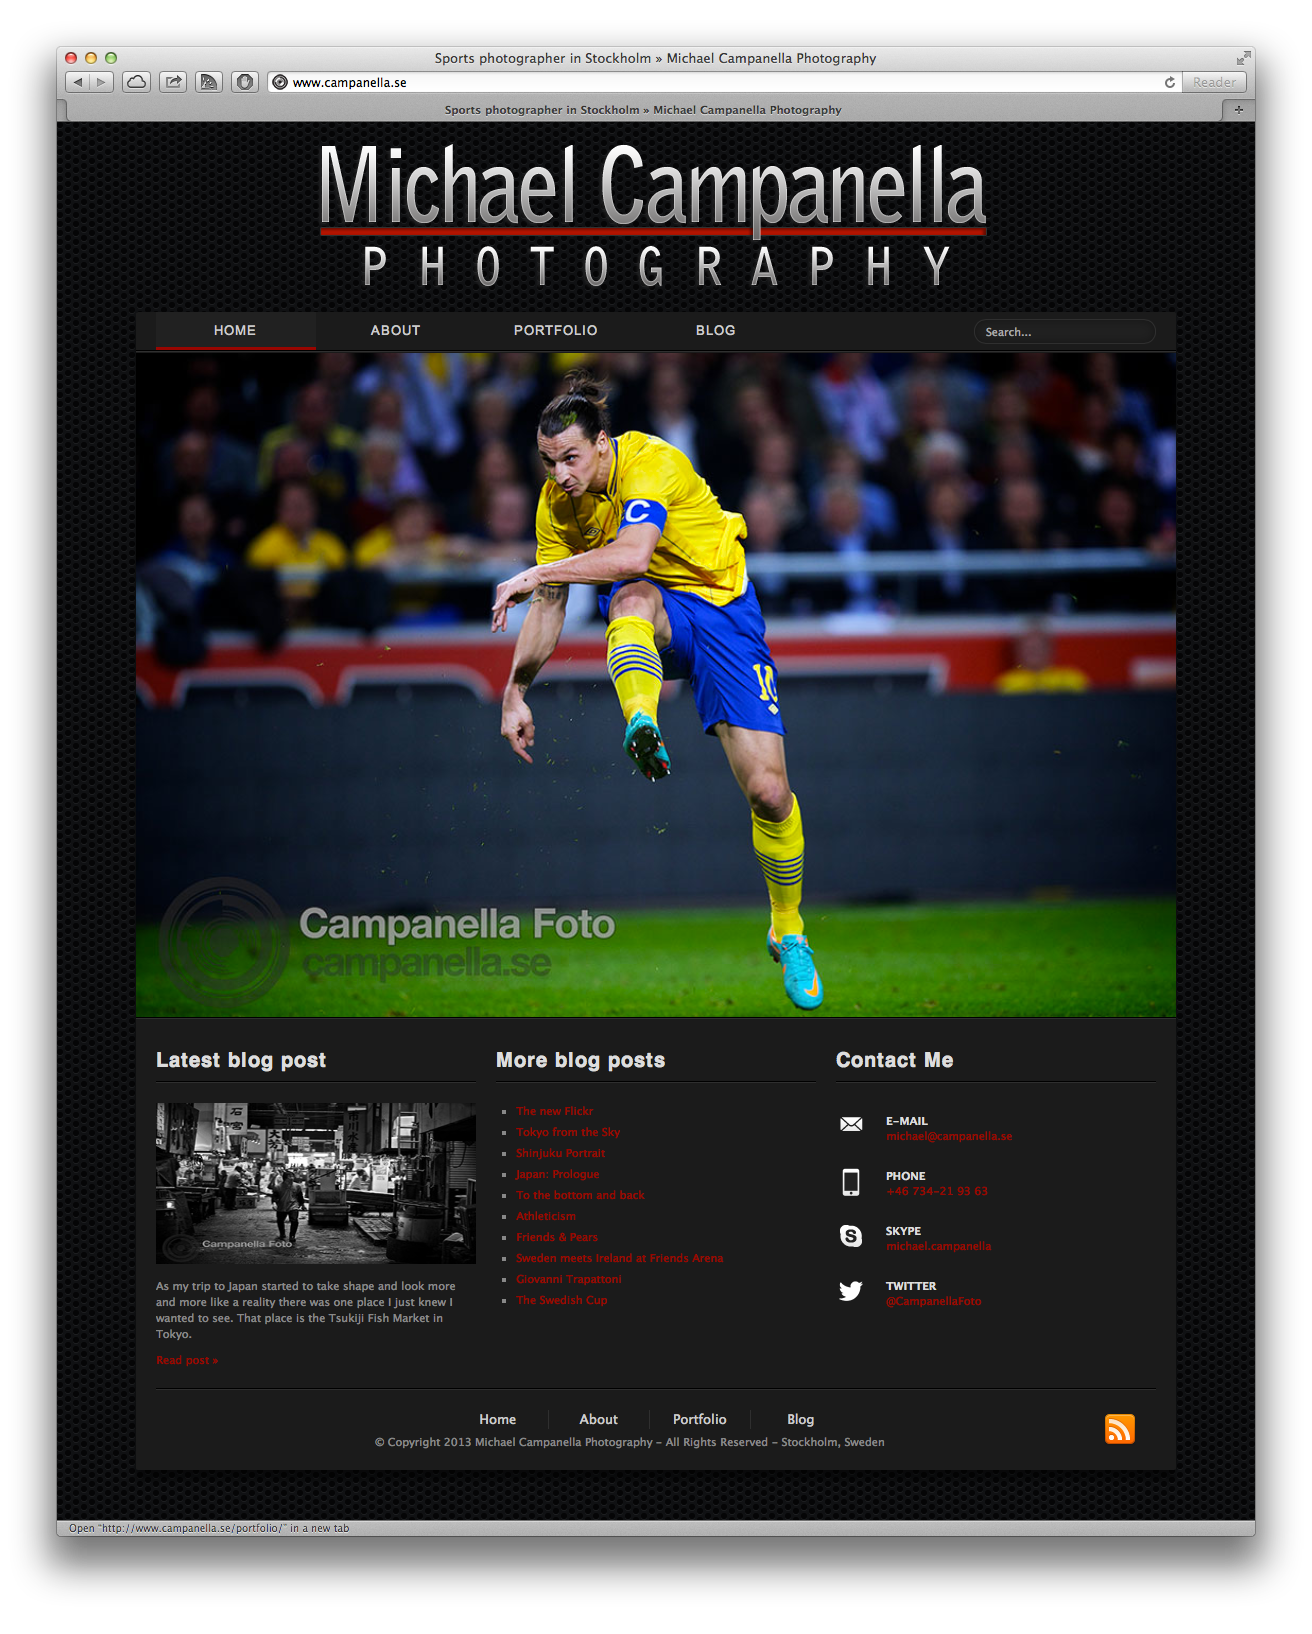 CampanellaFoto - Version 4.0 - Homepage